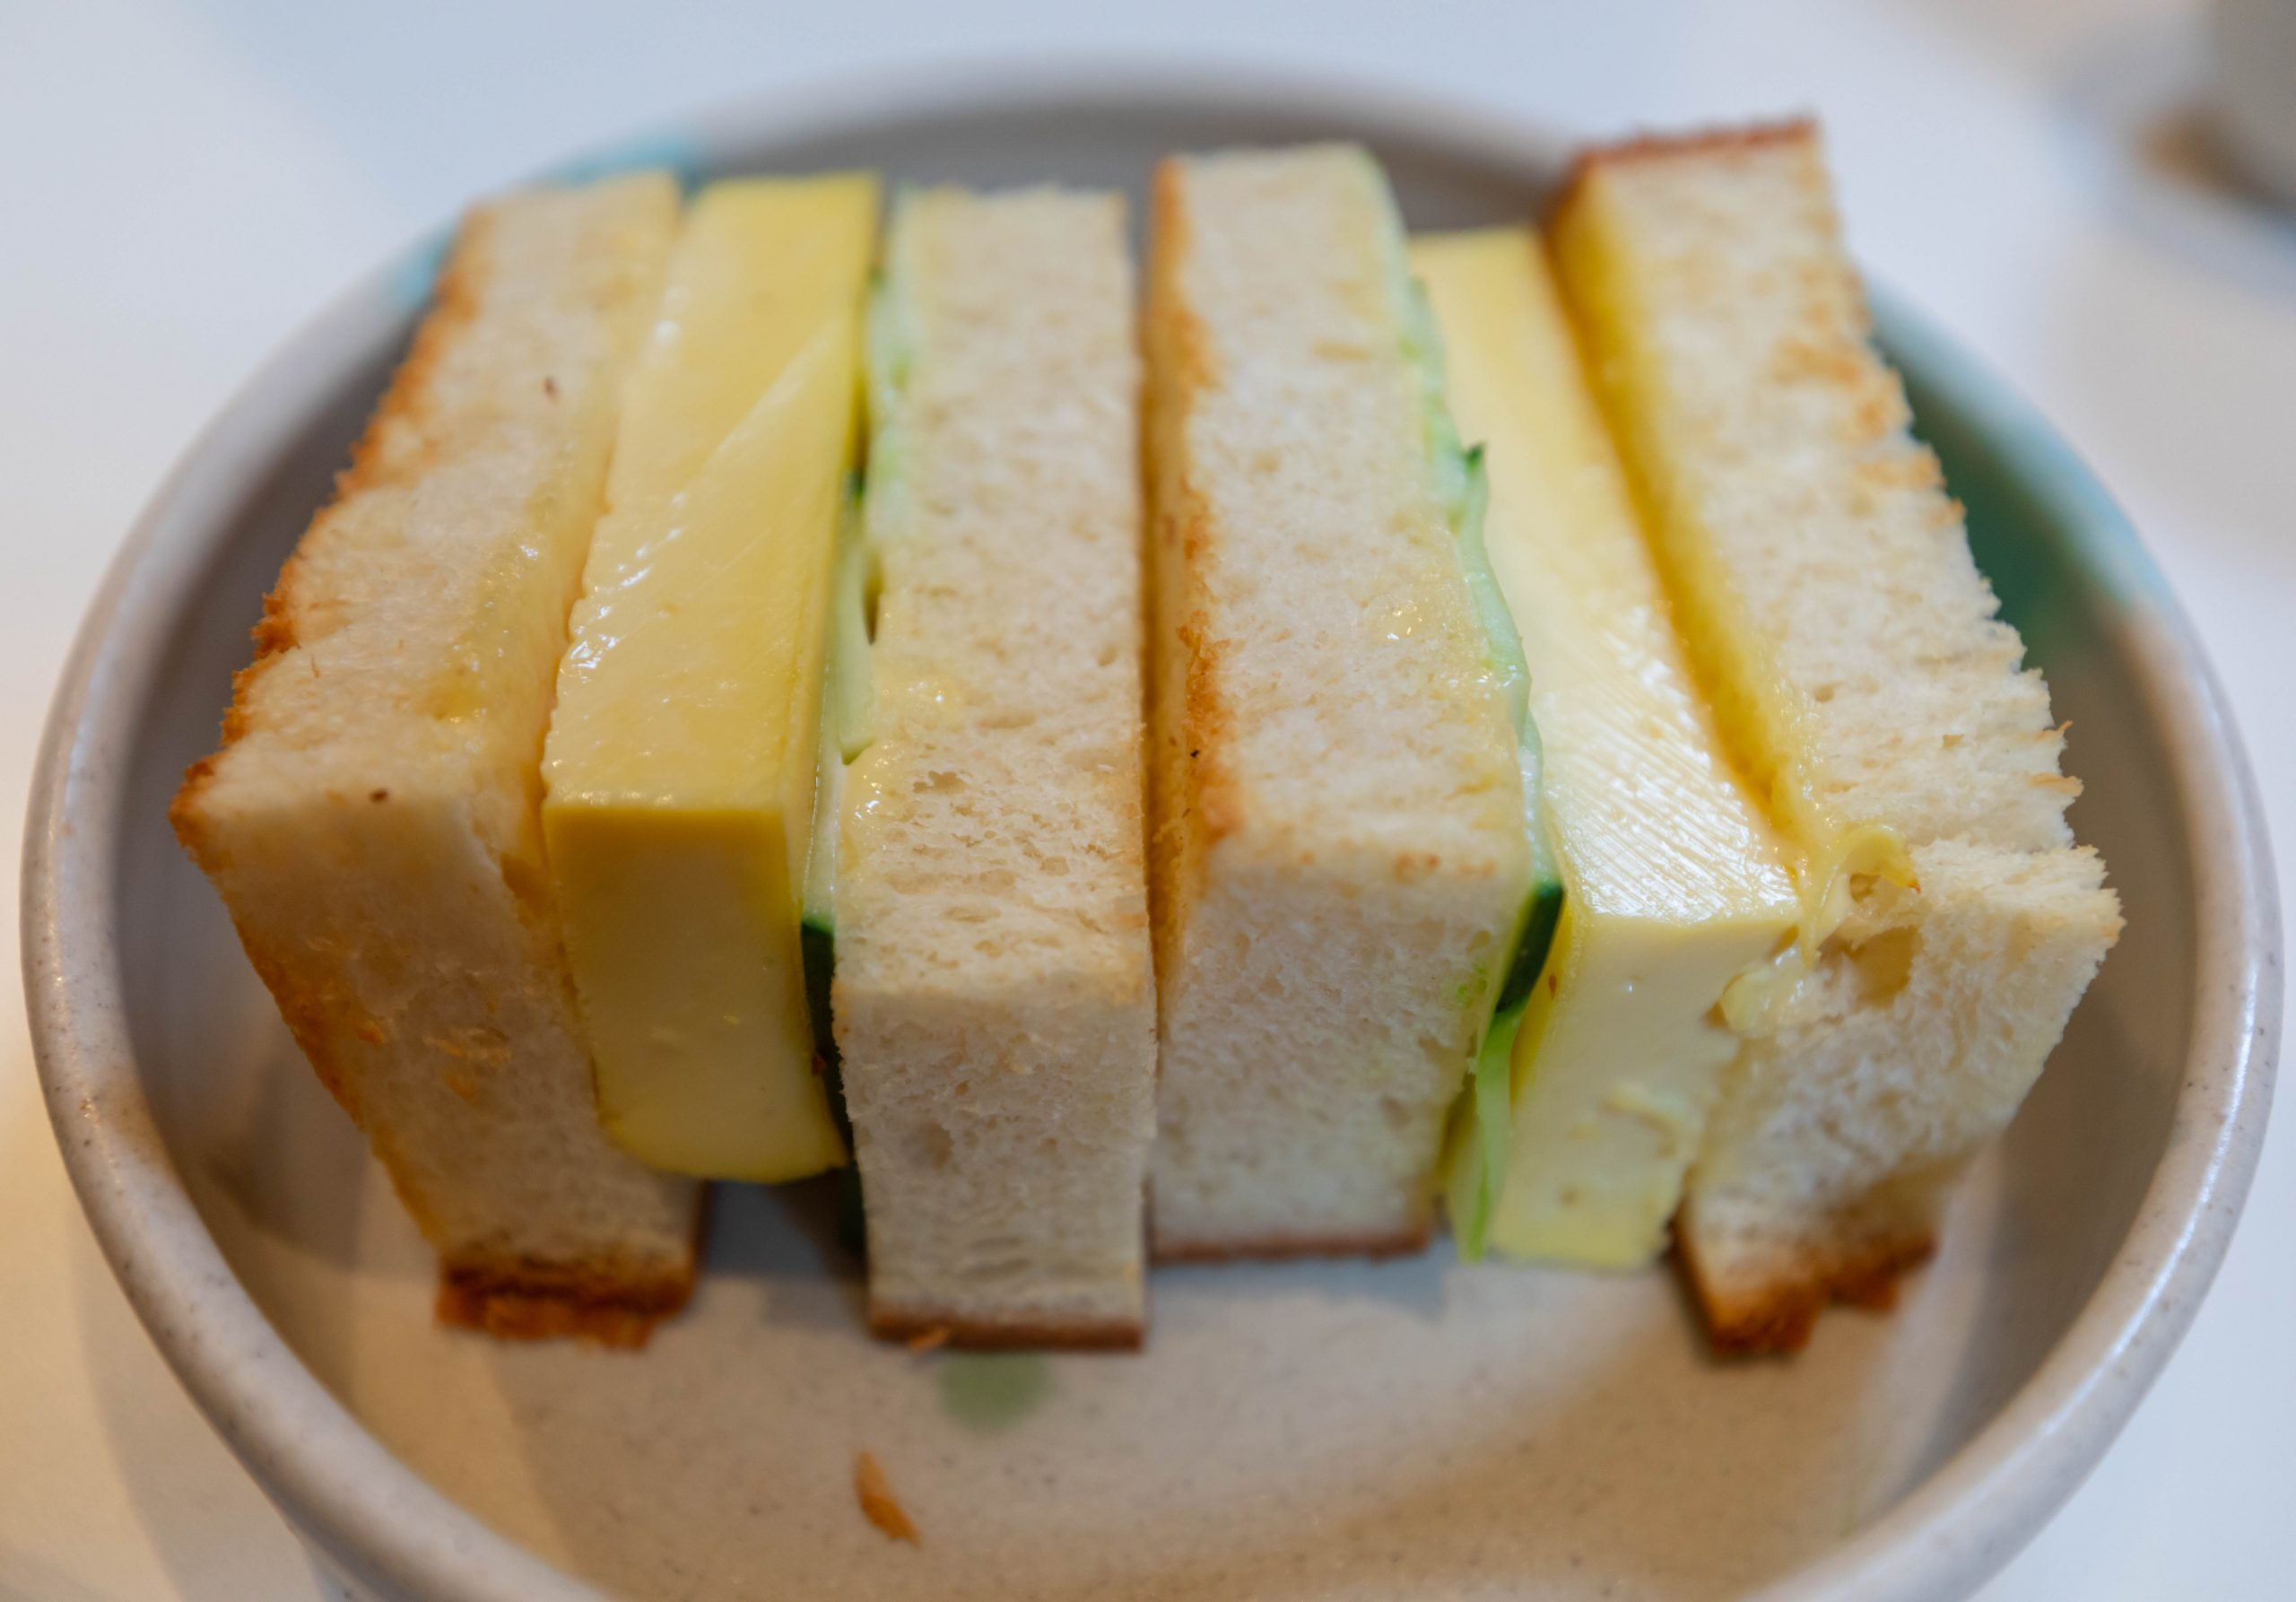 Tamago Sando Japanese Egg Salad Sandwich at Rule of Thirds Brooklyn Japanese Food in New York City NYC Fine Dining Asian Cuisine Luxury Restaurants of the World Written and Photographed by Annie Fairfax